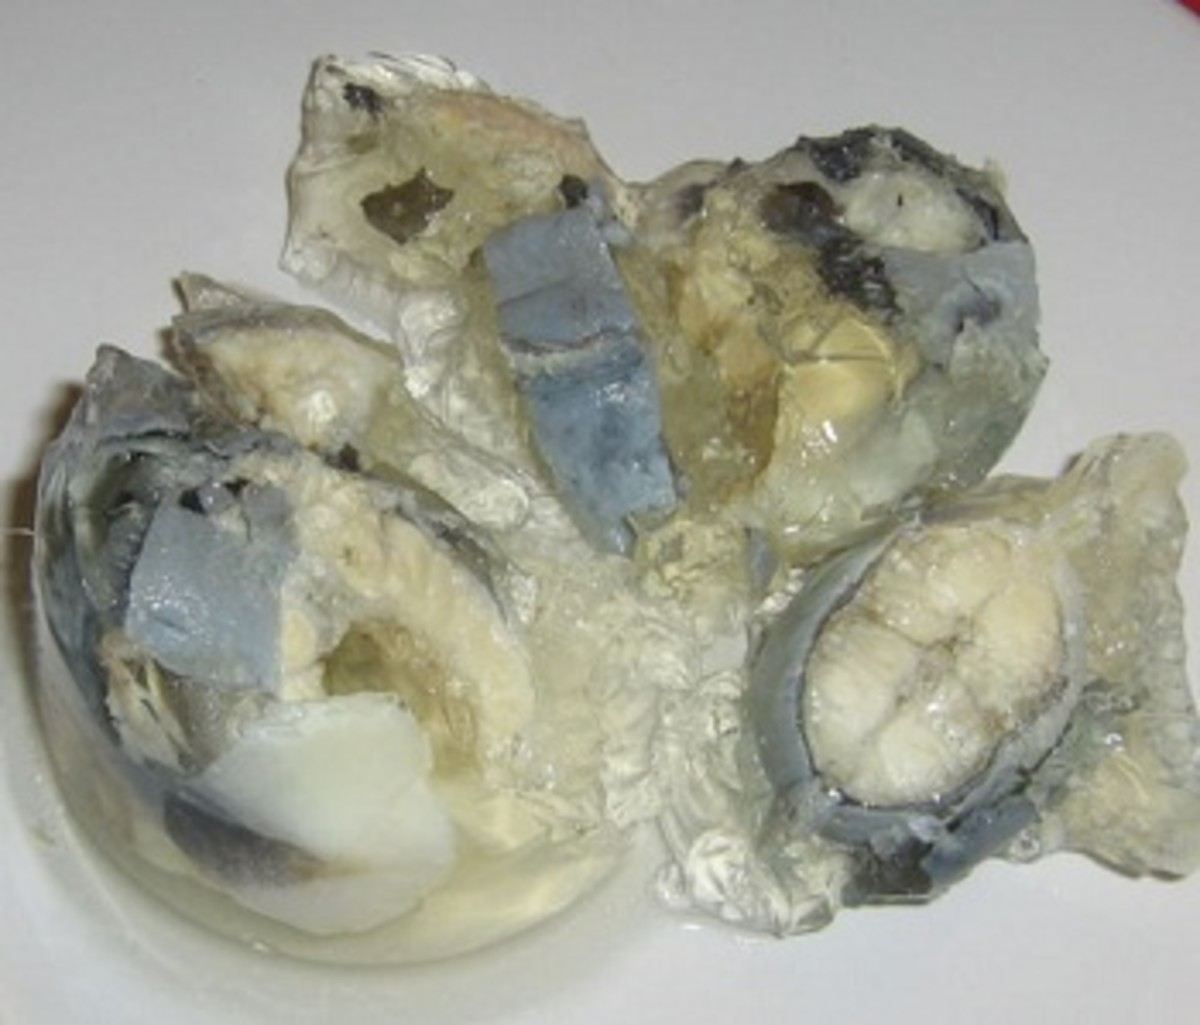 Jellied eels - they taste better than they look